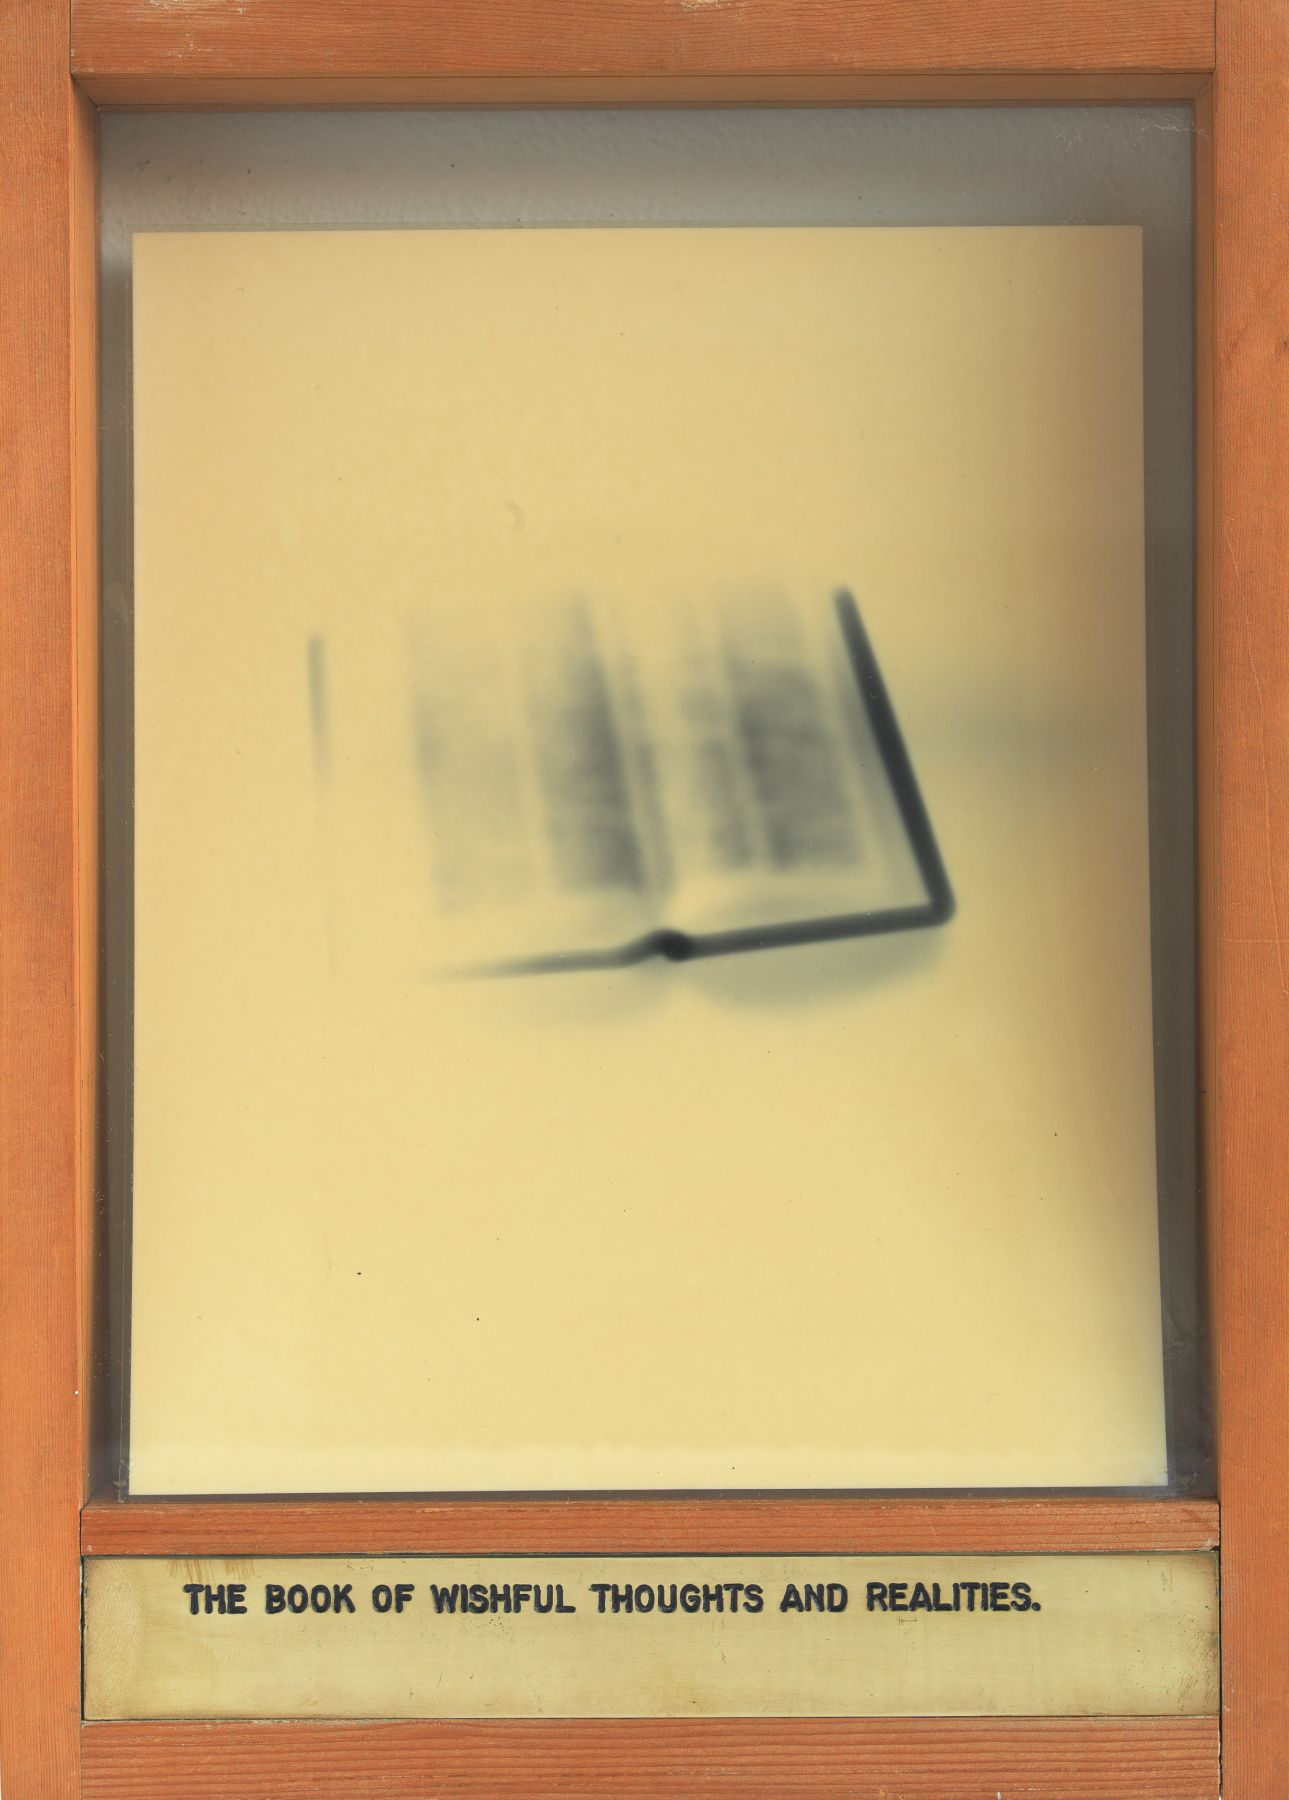 The Book of Wishful Thoughts and Realities., 1975-1978, Mixed Media